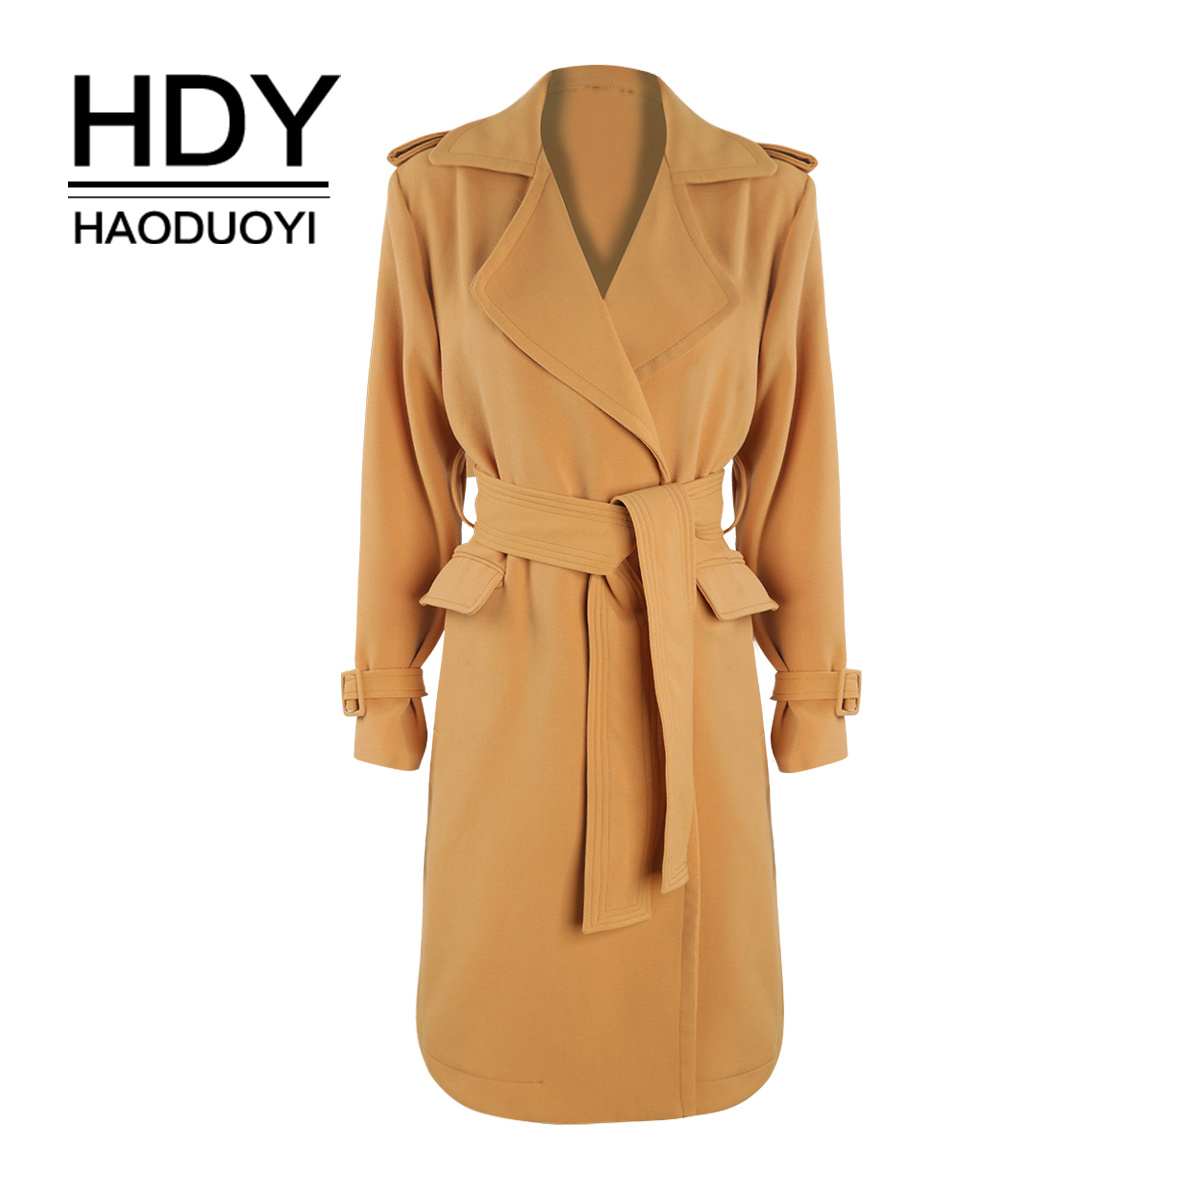 HDY Haoduoyi 2018 Ginger Epaulettes Waist Knot Hem Open Safari   Trench   Coat For Female Natural Leisure Style Winter Autumn